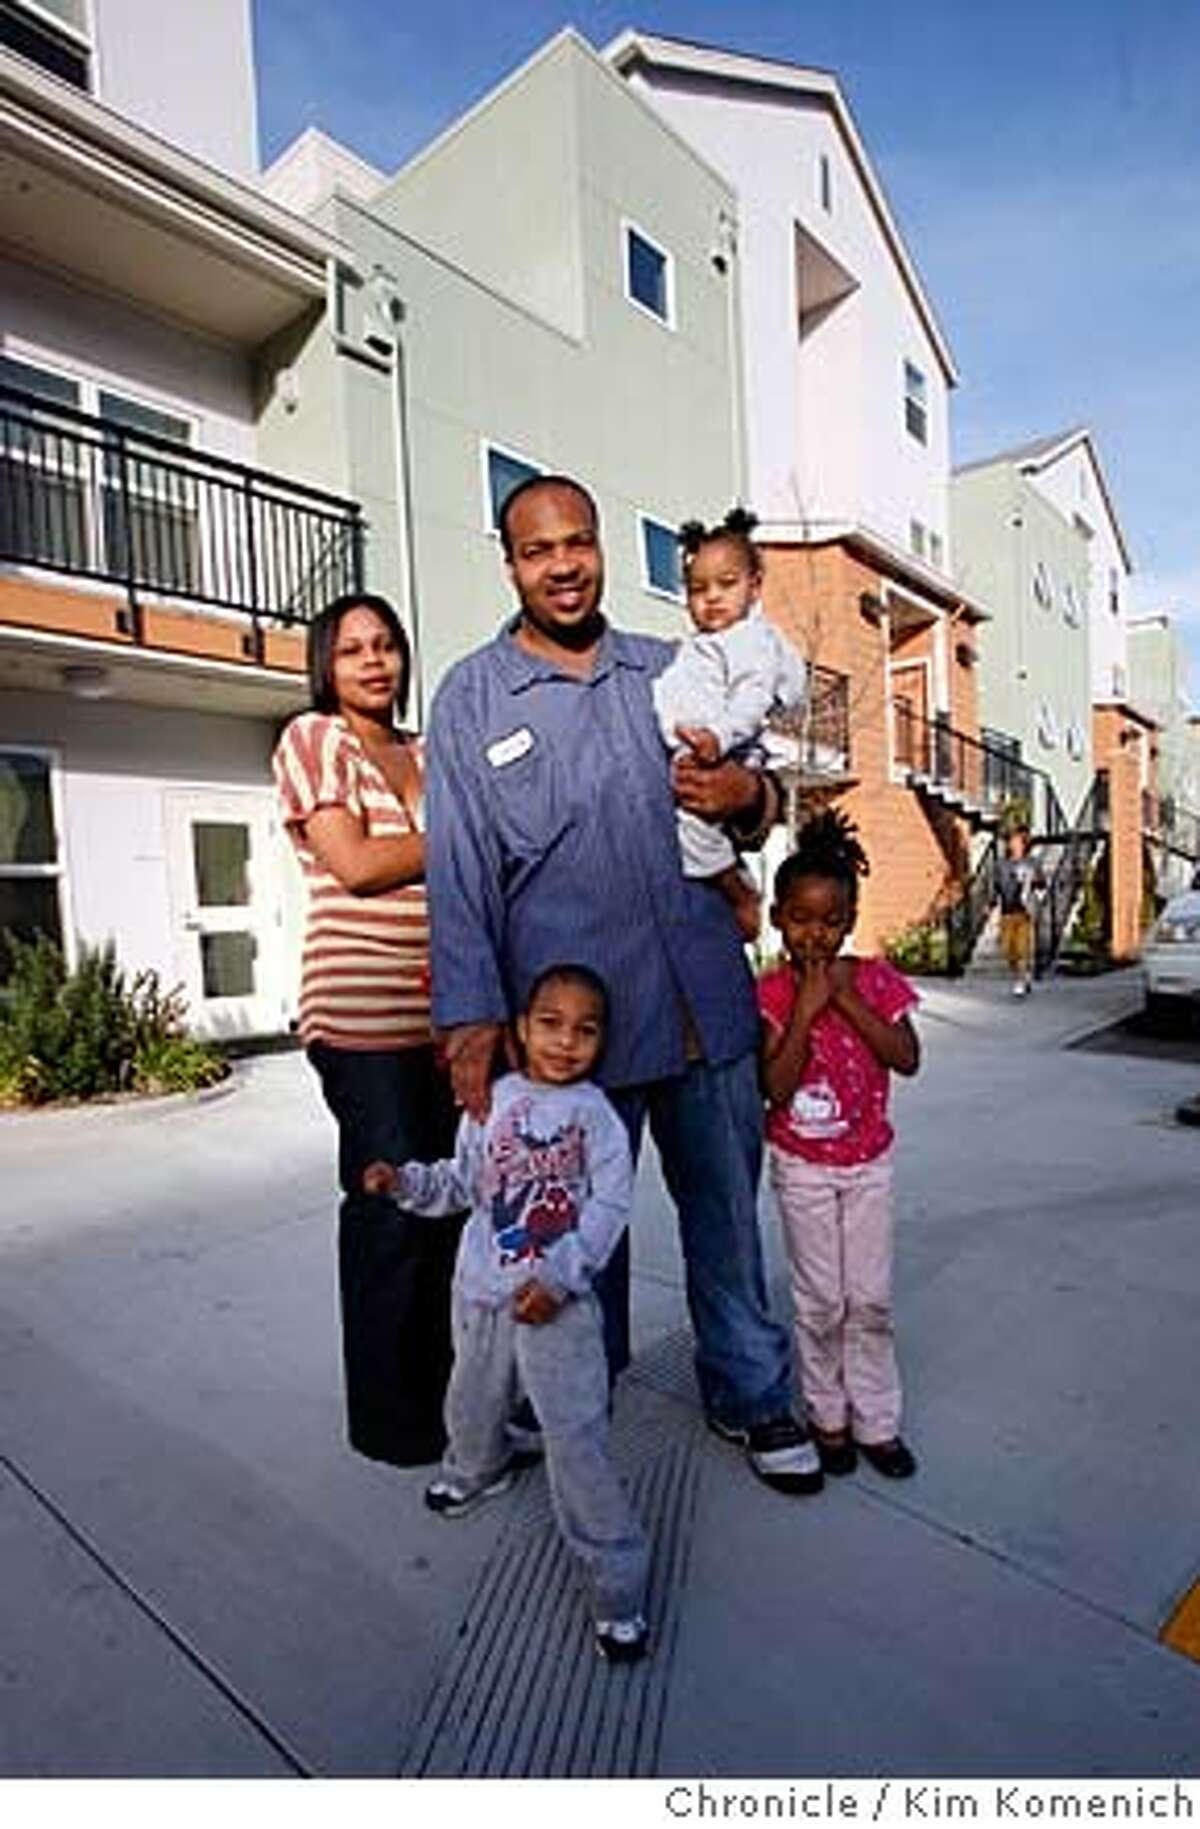 cq Jonta, Johntay, Kymonnie) Kelly and Jonta Davenport and their children, Heaven, 1, (in Jonta's arms), Johntay, 3, front left, and Kymonnie, 6 , front right, Feb. 26, 2008 in front of the Giant Road Family Apartments in San Pablo, Cs. Photo by Kim Komenich / San Francisco Chronicle MANDATORY CREDIT FOR PHOTOG AND SAN FRANCISCO CHRONICLE. NO SALES- MAGS OUT.